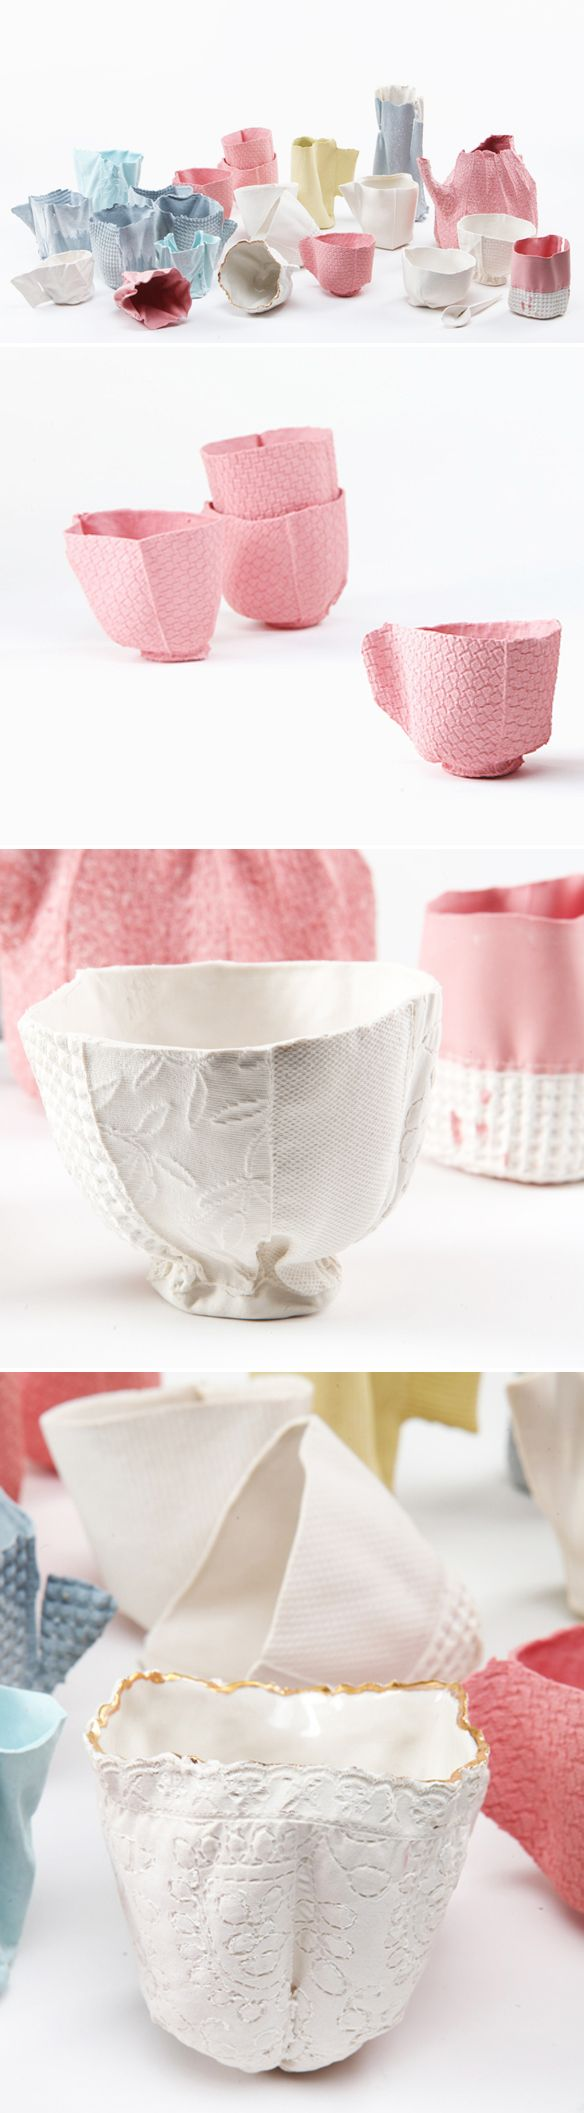 fabric or ceramic? ... ceramic! work by rachel boxnboim